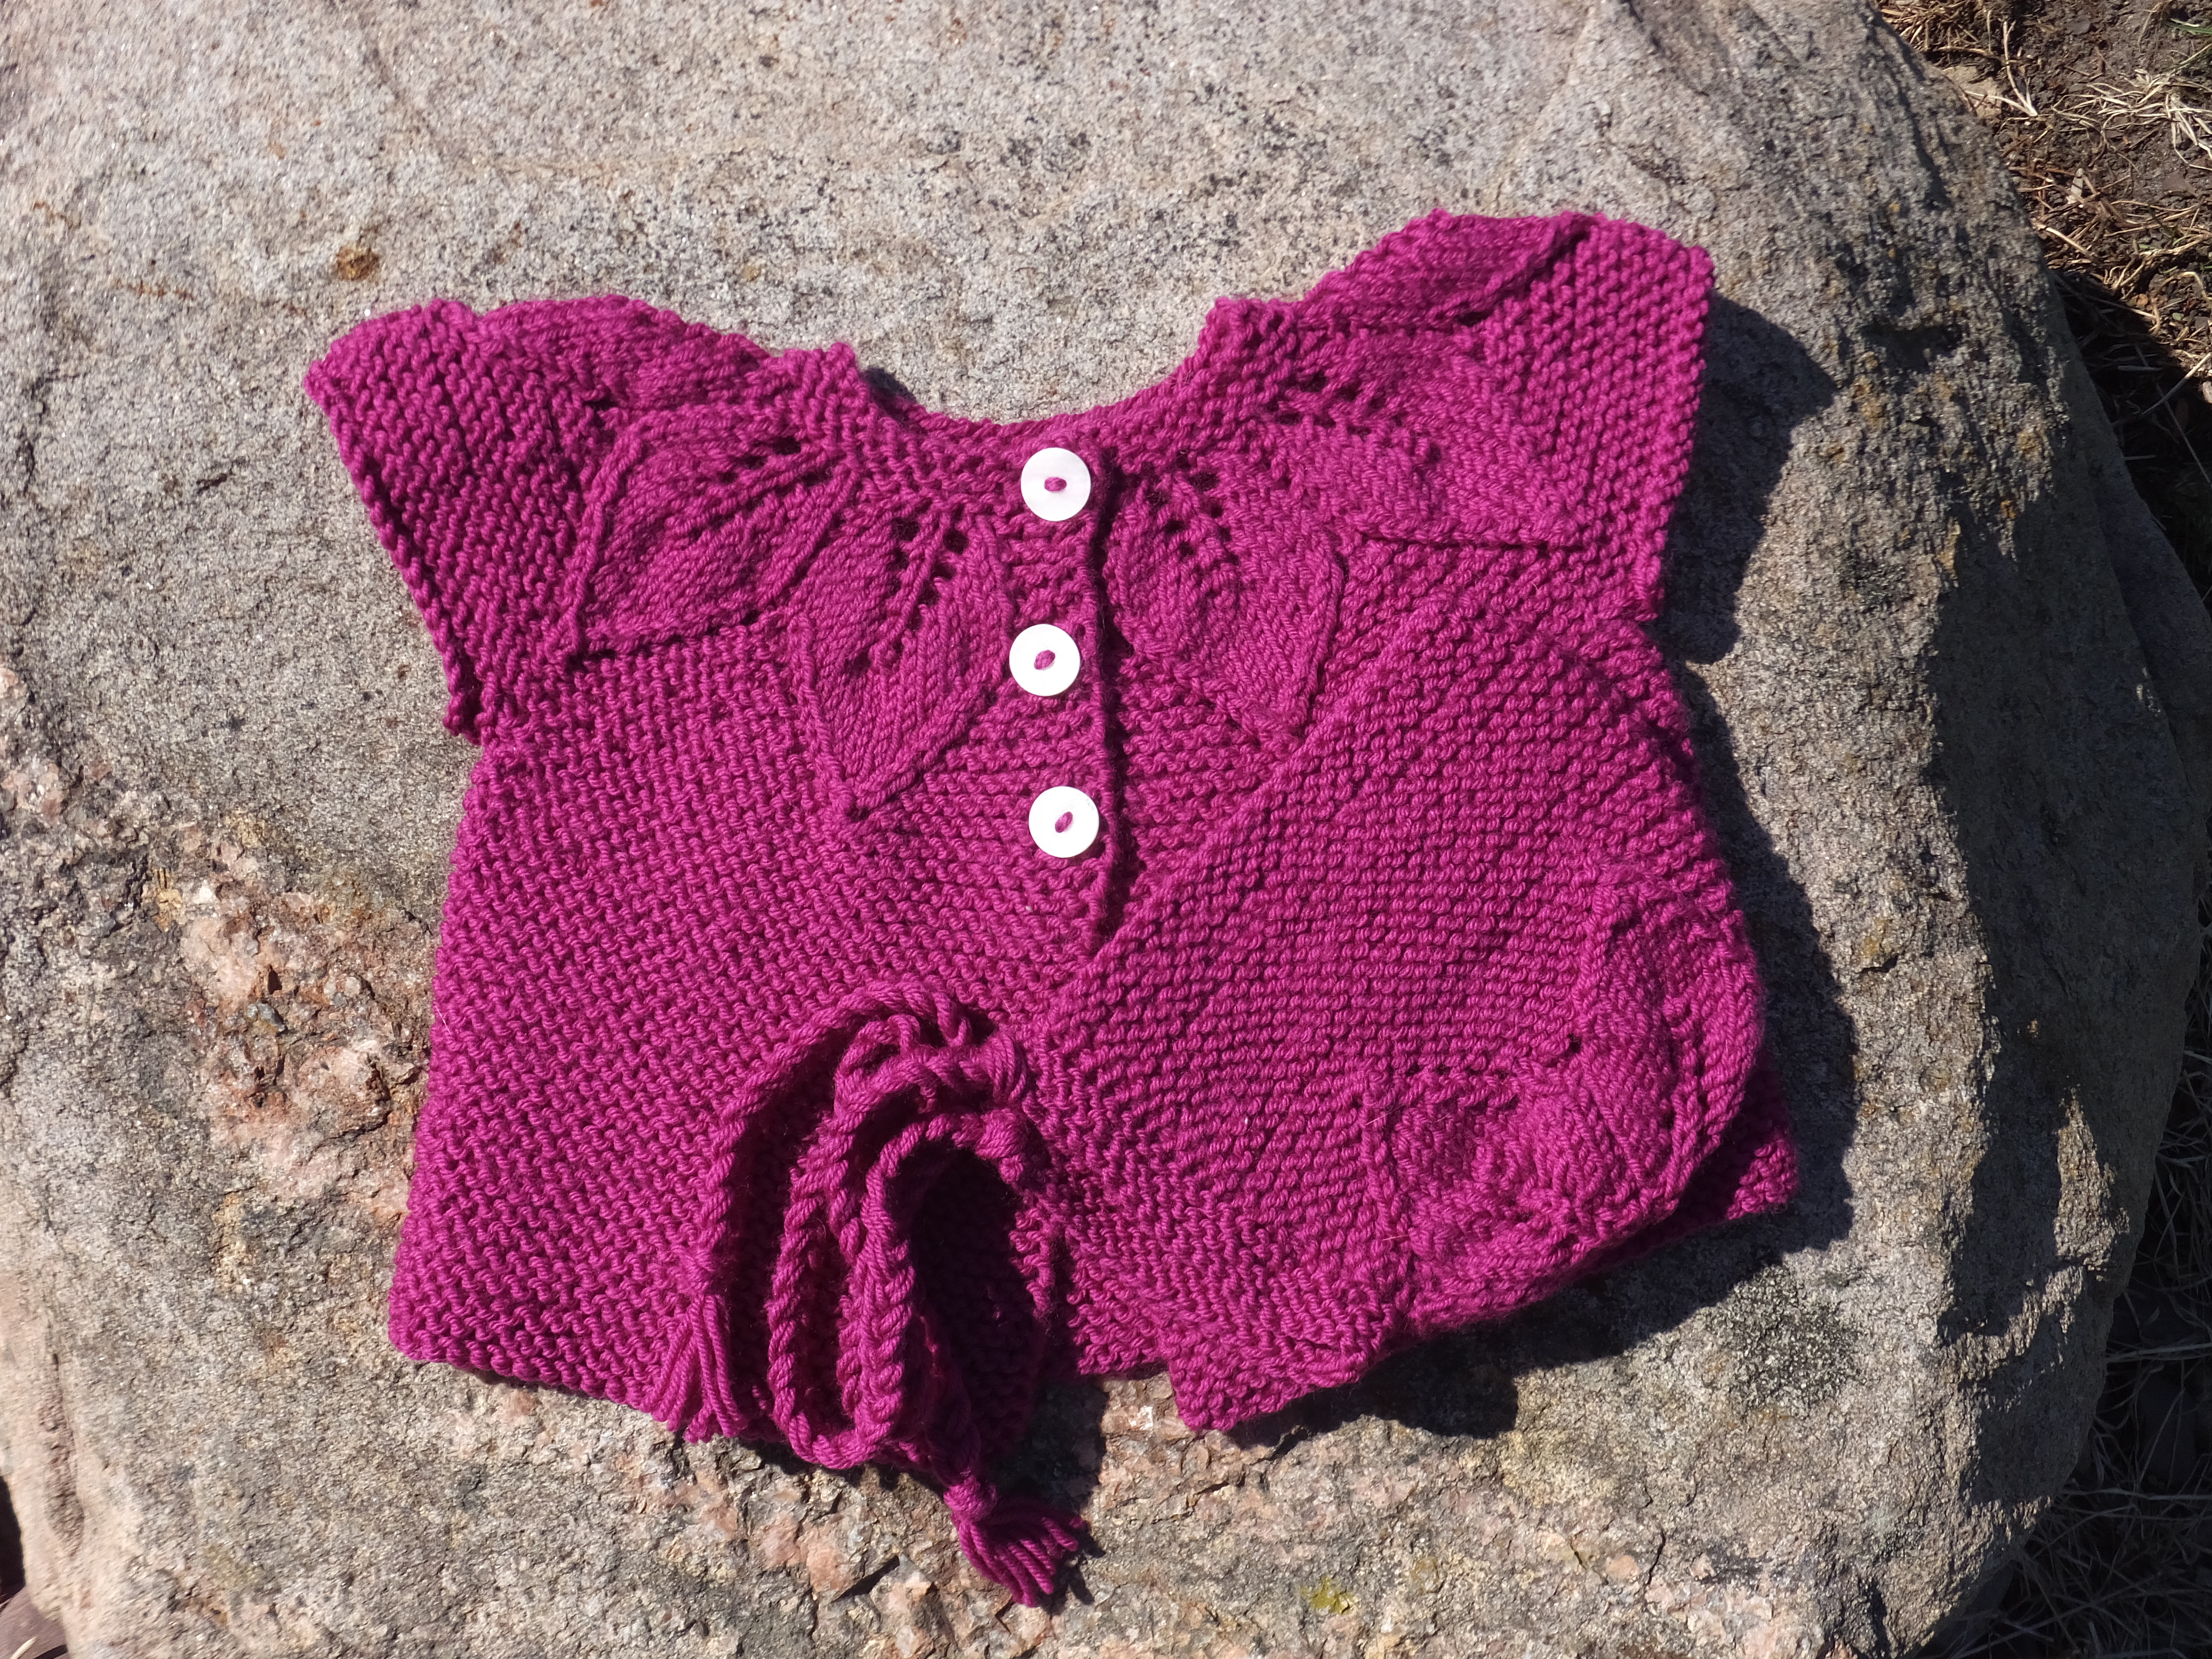 The Knitting Nurse Rambles and Travels